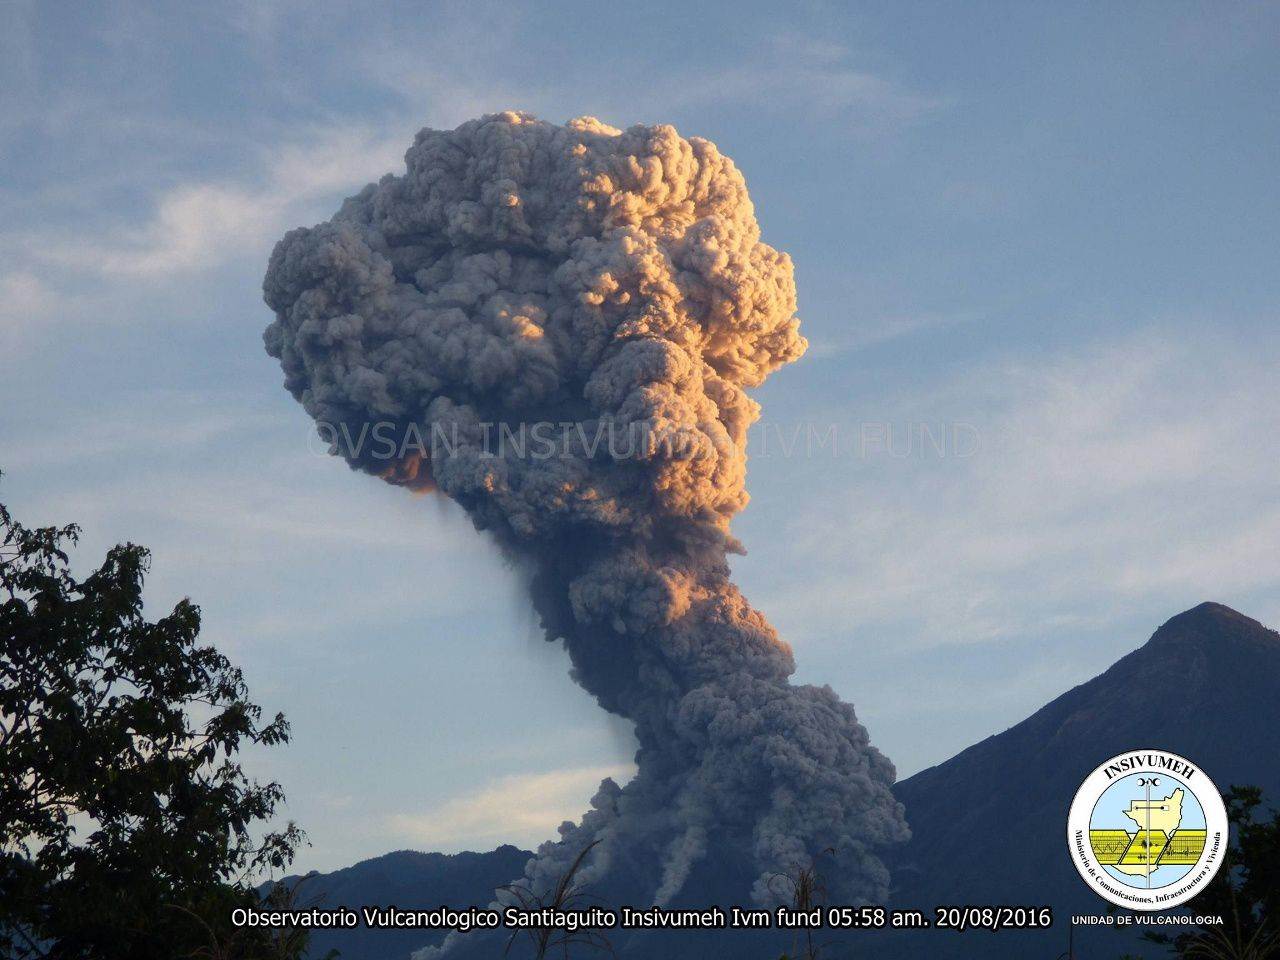 Santiaguito - explosive eruption 08.20.2016 / 5:58 loc. - Photo INSIVUMEH